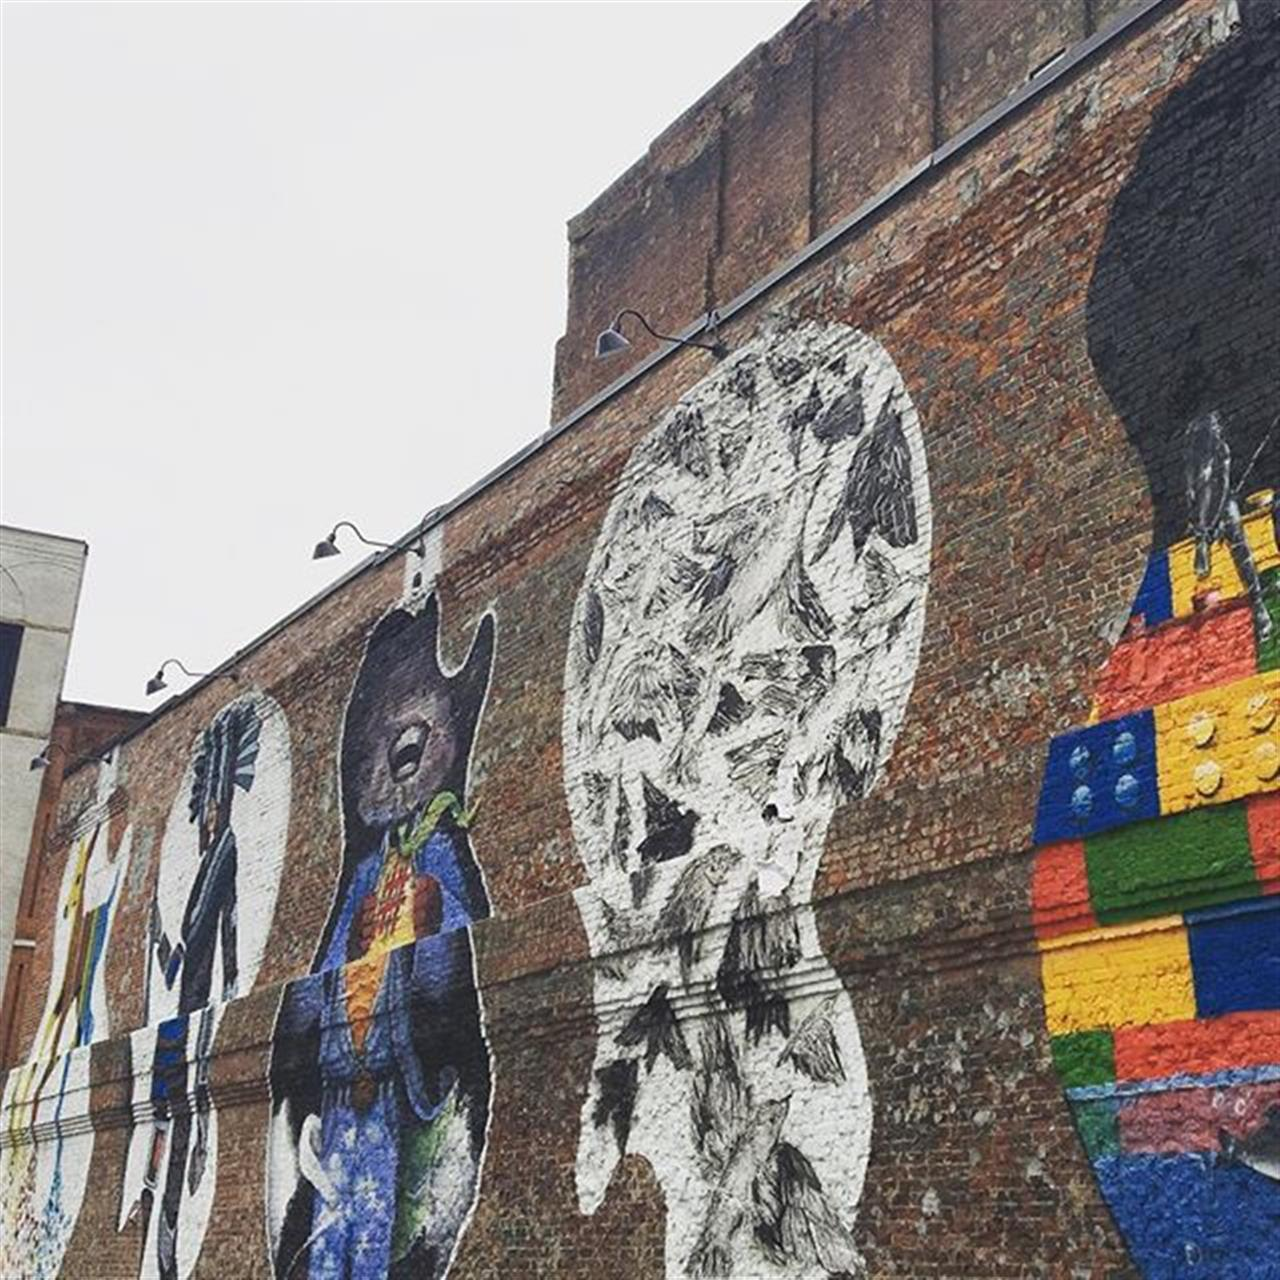 Wall art in Downtown Nashville featuring 5 murals each painted by local artists on 3rd and Church ? #localart #wallsofnashville #community #parksathome #leadingrelocal